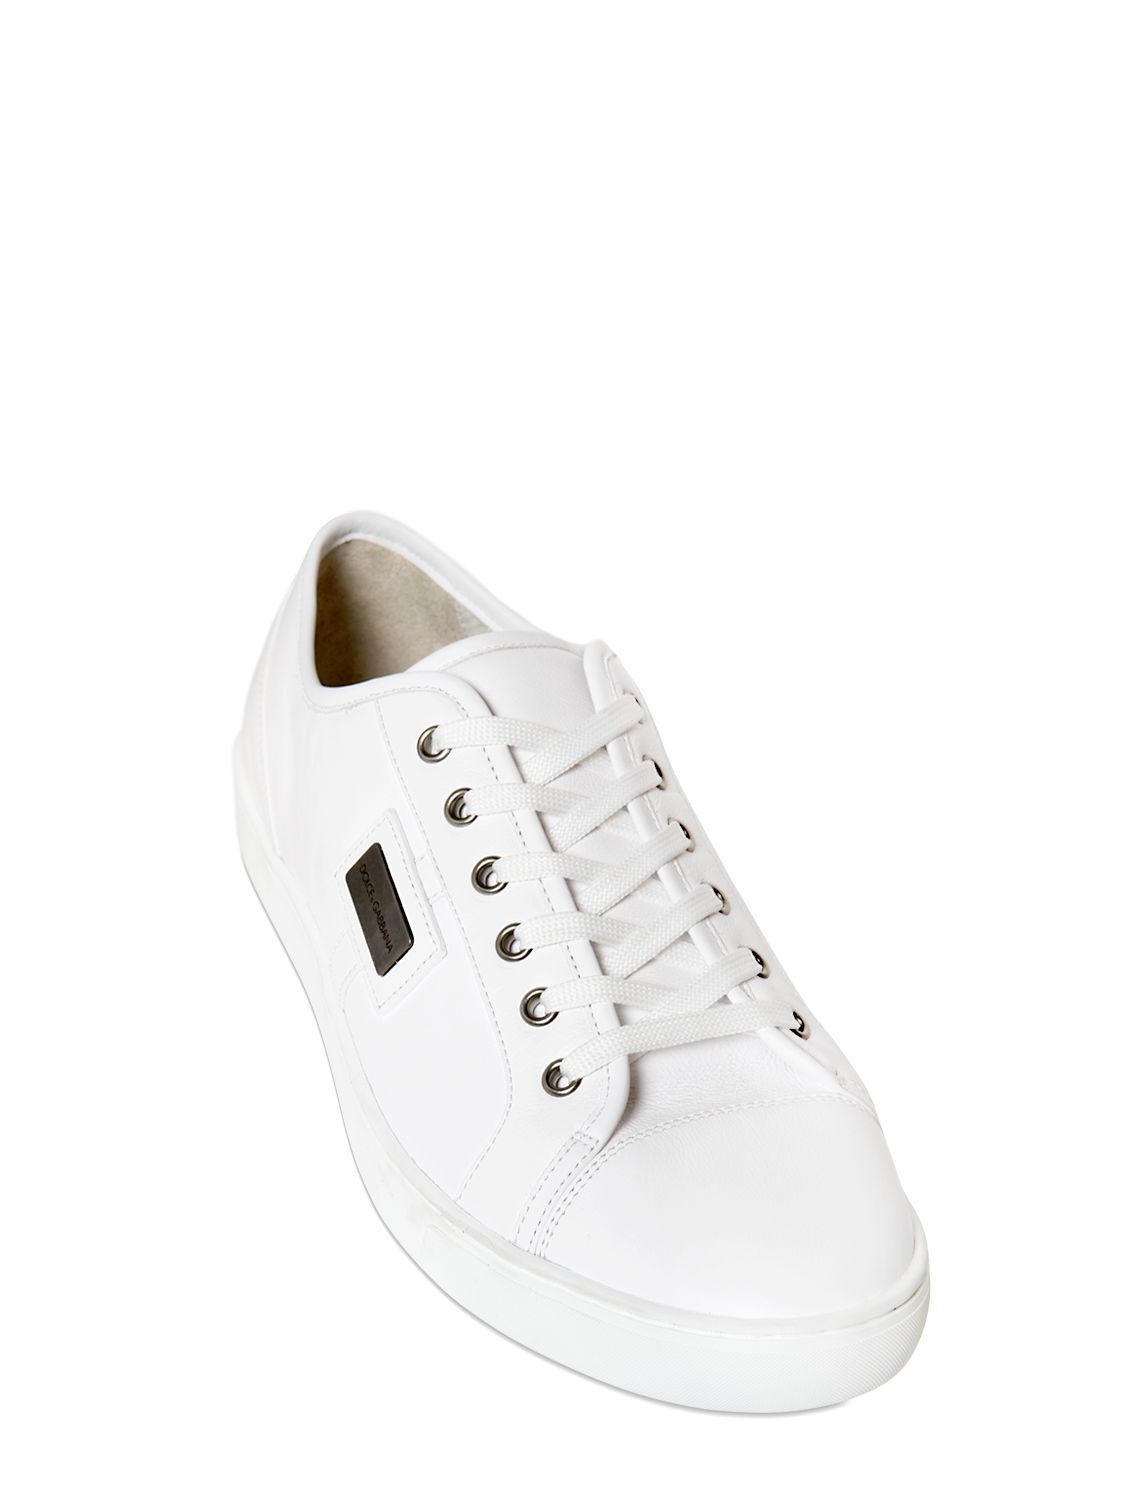 dolce gabbana metal logo plaque nappa leather sneakers